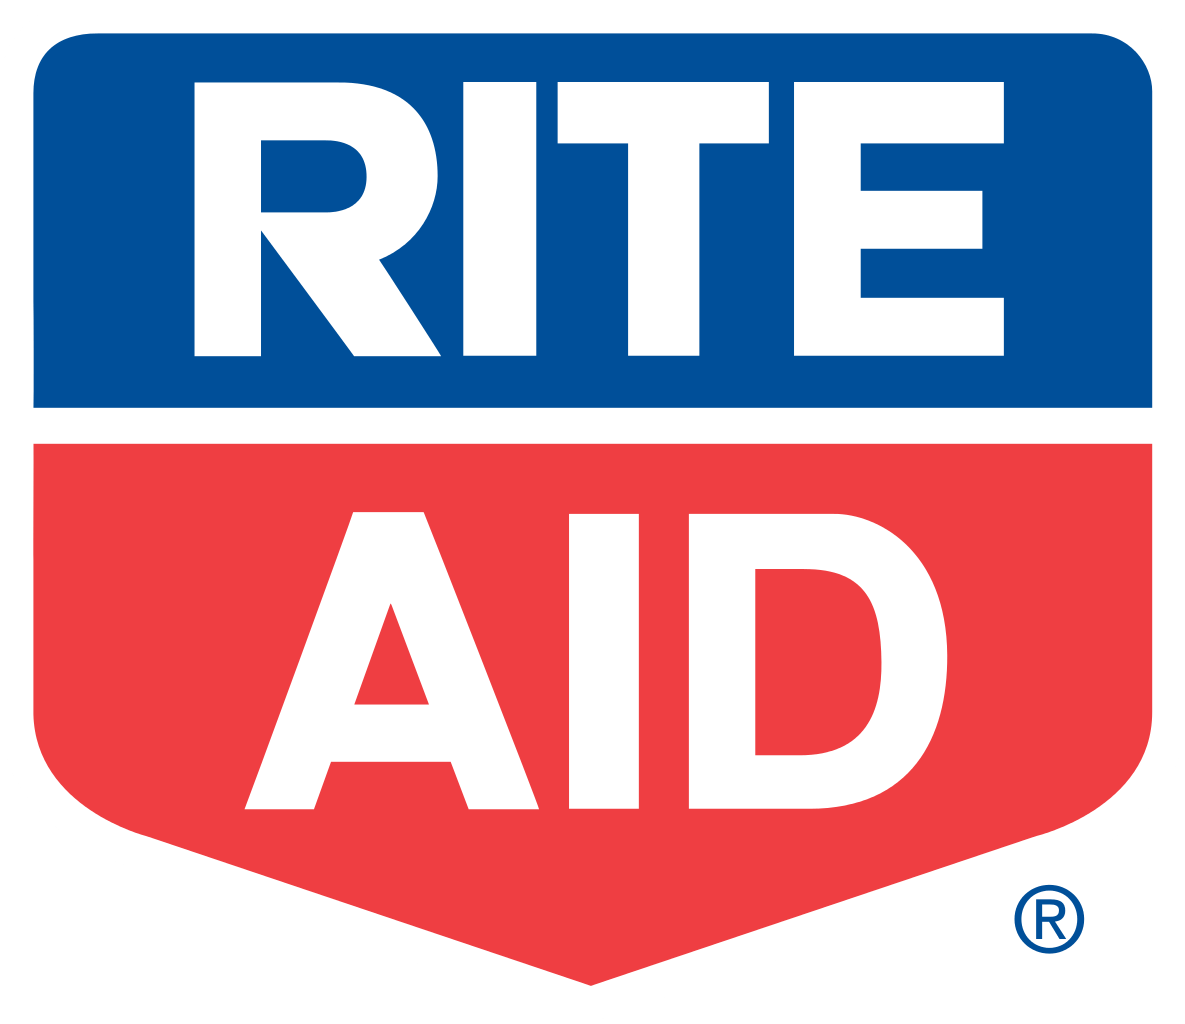 Rite aid corporation nyserad albertsons acquiring rite aid albertsons acquiring rite aid corporation rad heading to nyse upon completion buycottarizona